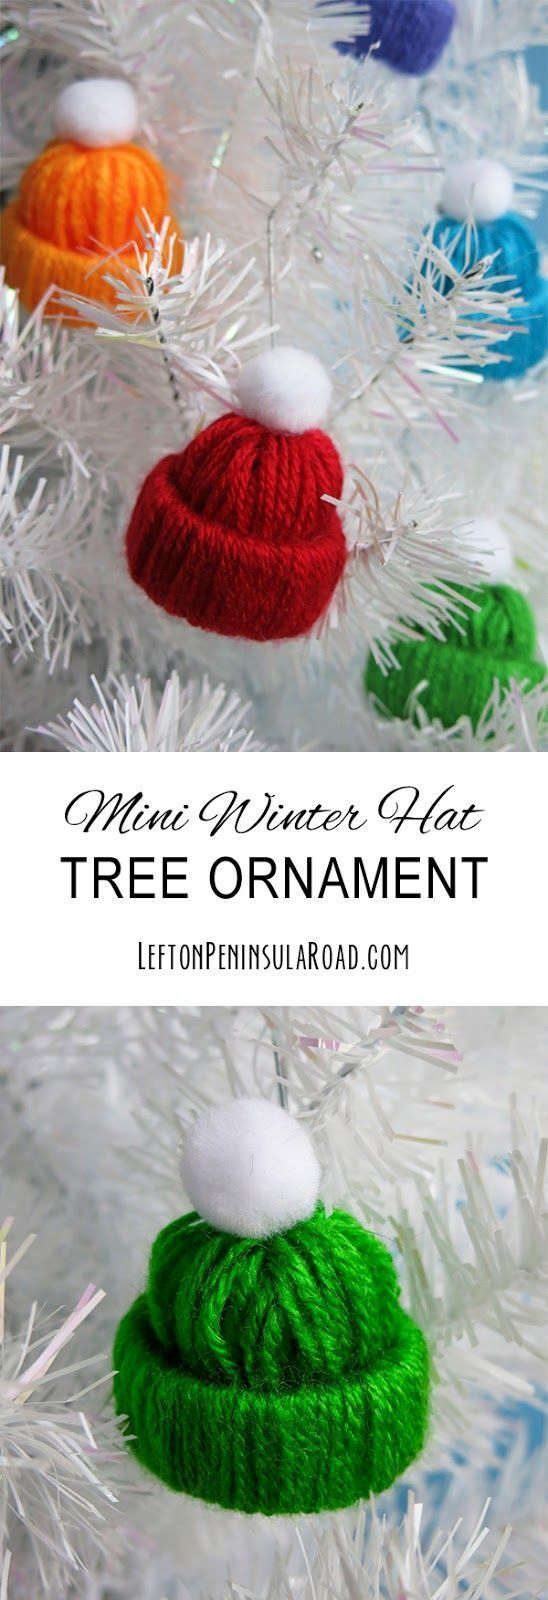 Miniature Winter Hats make adorable decorations, package toppers, or Christmas ornaments.